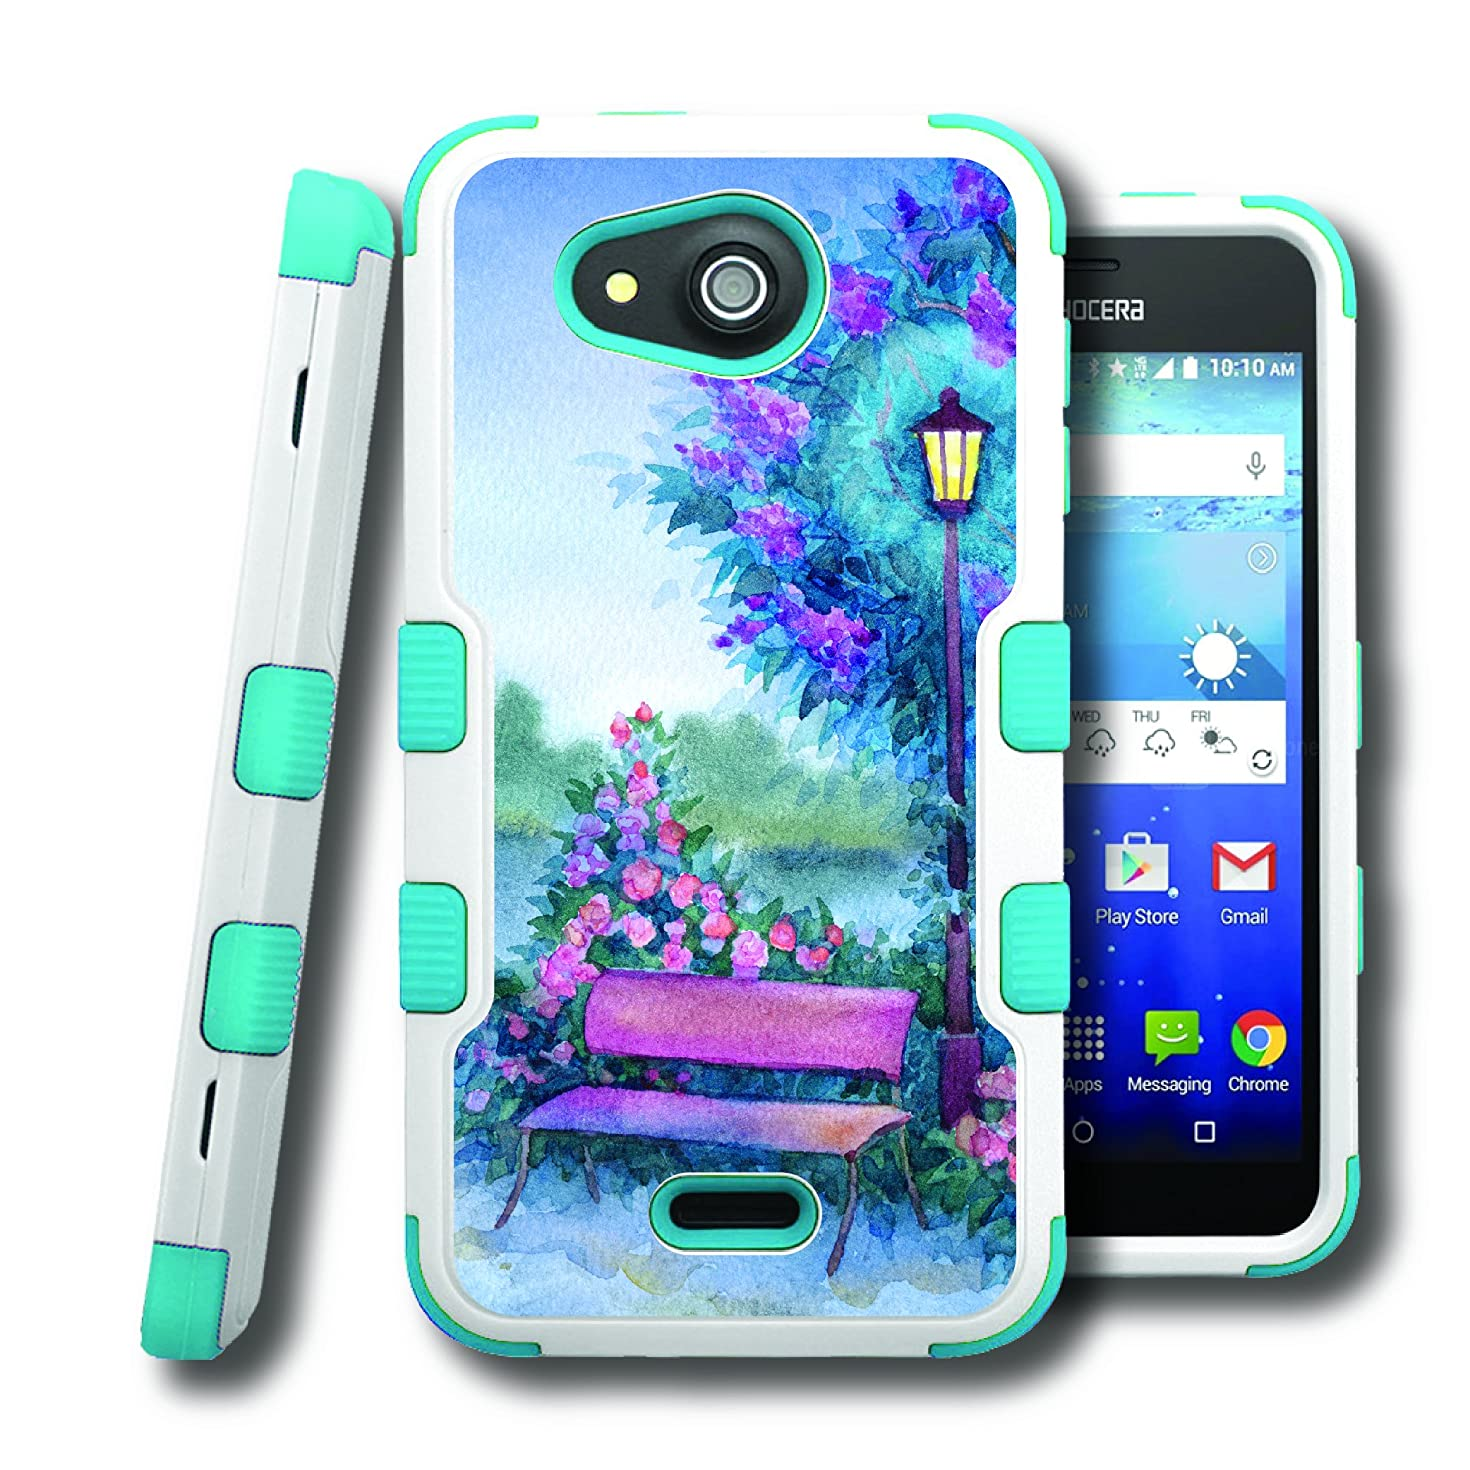 Hydro Wave Case, CASECREATOR[TM] For Kyocera Hydro Wave / Kyocera C6740 (T-Mobile, MetroPCS) -- NATURAL TUFF Hybrid Rubber Hard Snap-on Case Teal Blue White-Lamp Post Bench